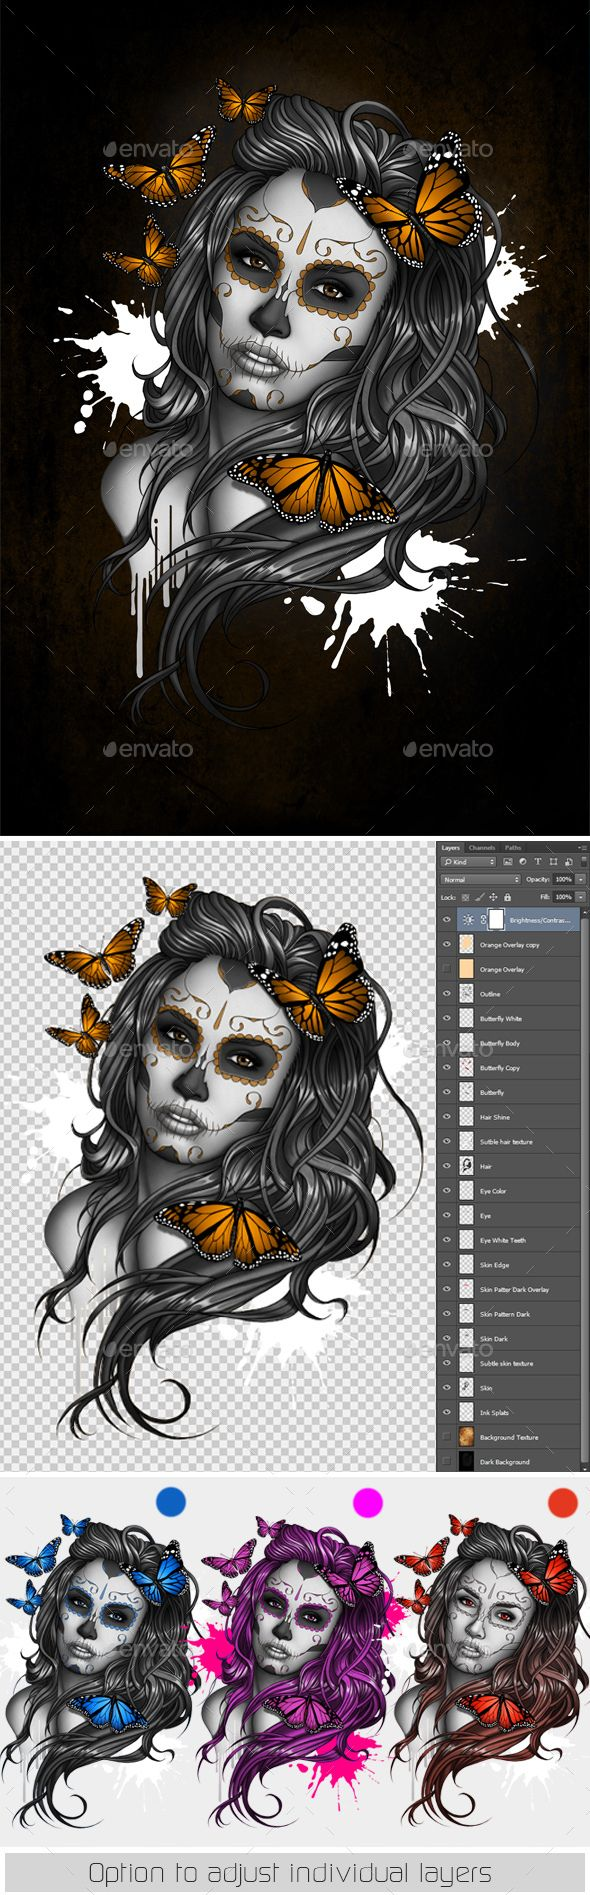 Sugar Skull Girl Tattoo by bomazu Tattoo Inspired Day of the Dead Sugar Skull Girl Illustration. Layered Photoshop File allowing easy layer colour adjustments. Art